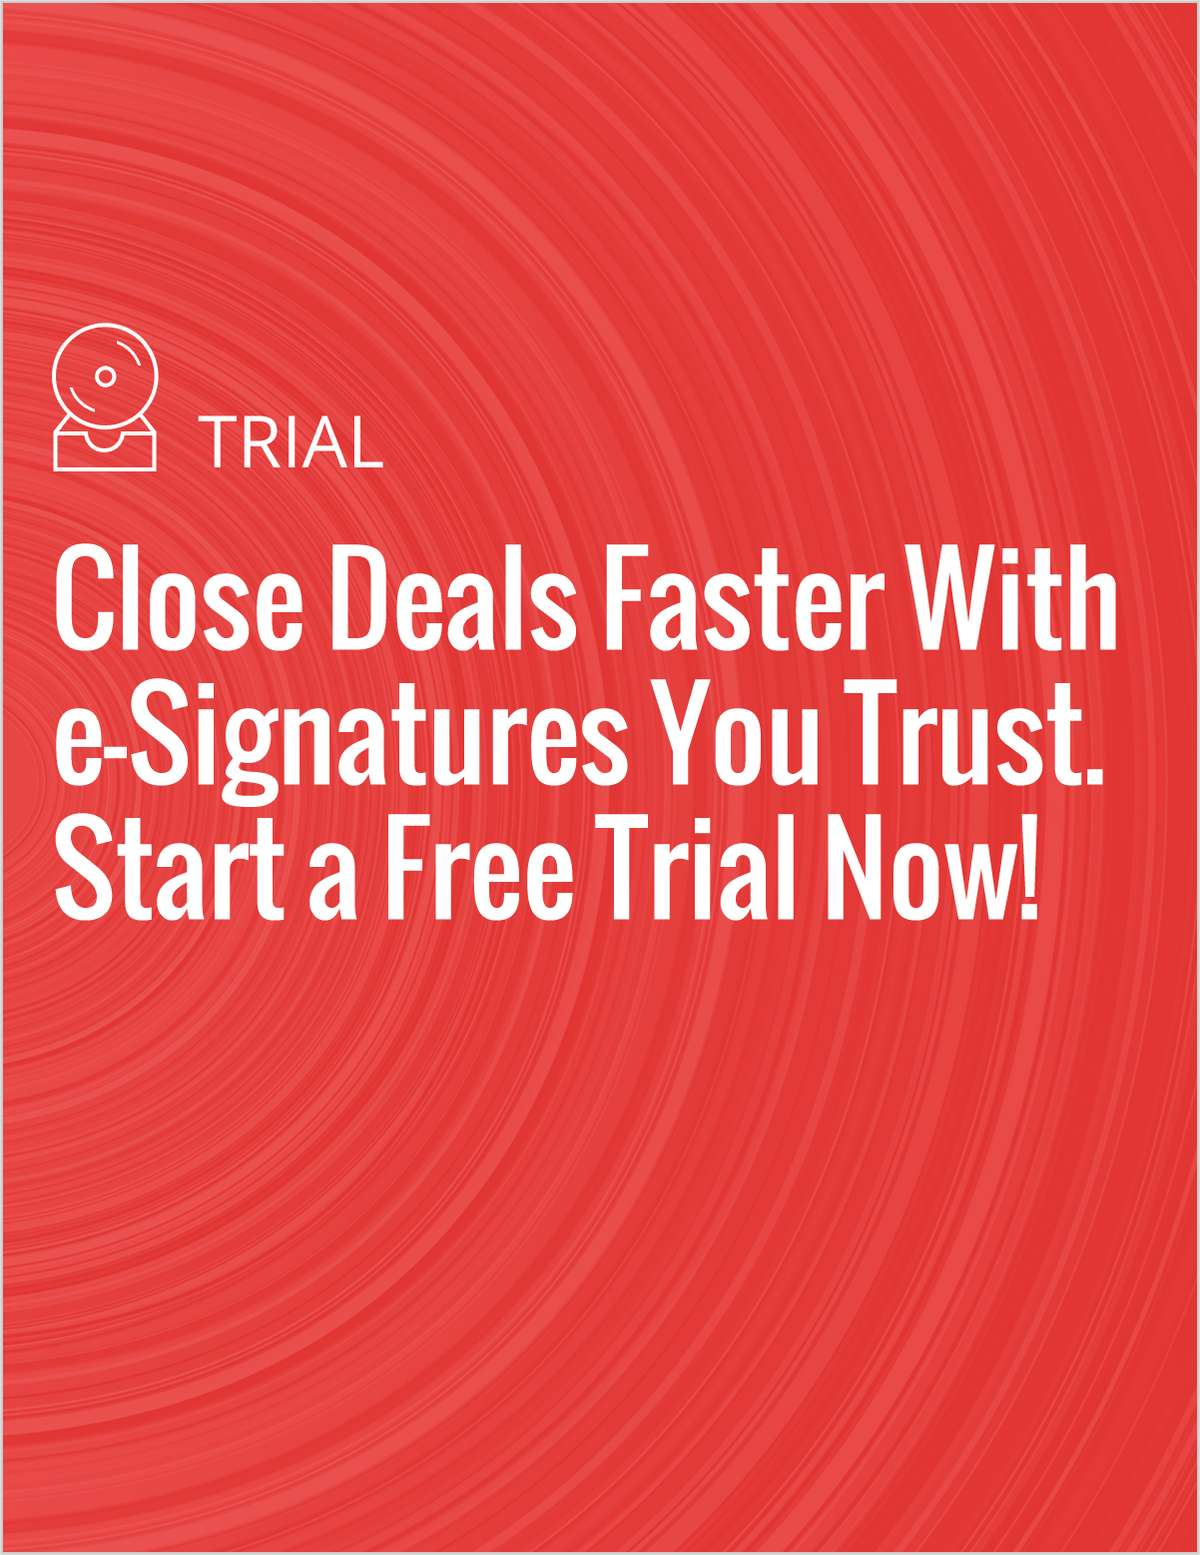 Close Deals Faster With e-Signatures You Trust. Start a Free Trial Now!